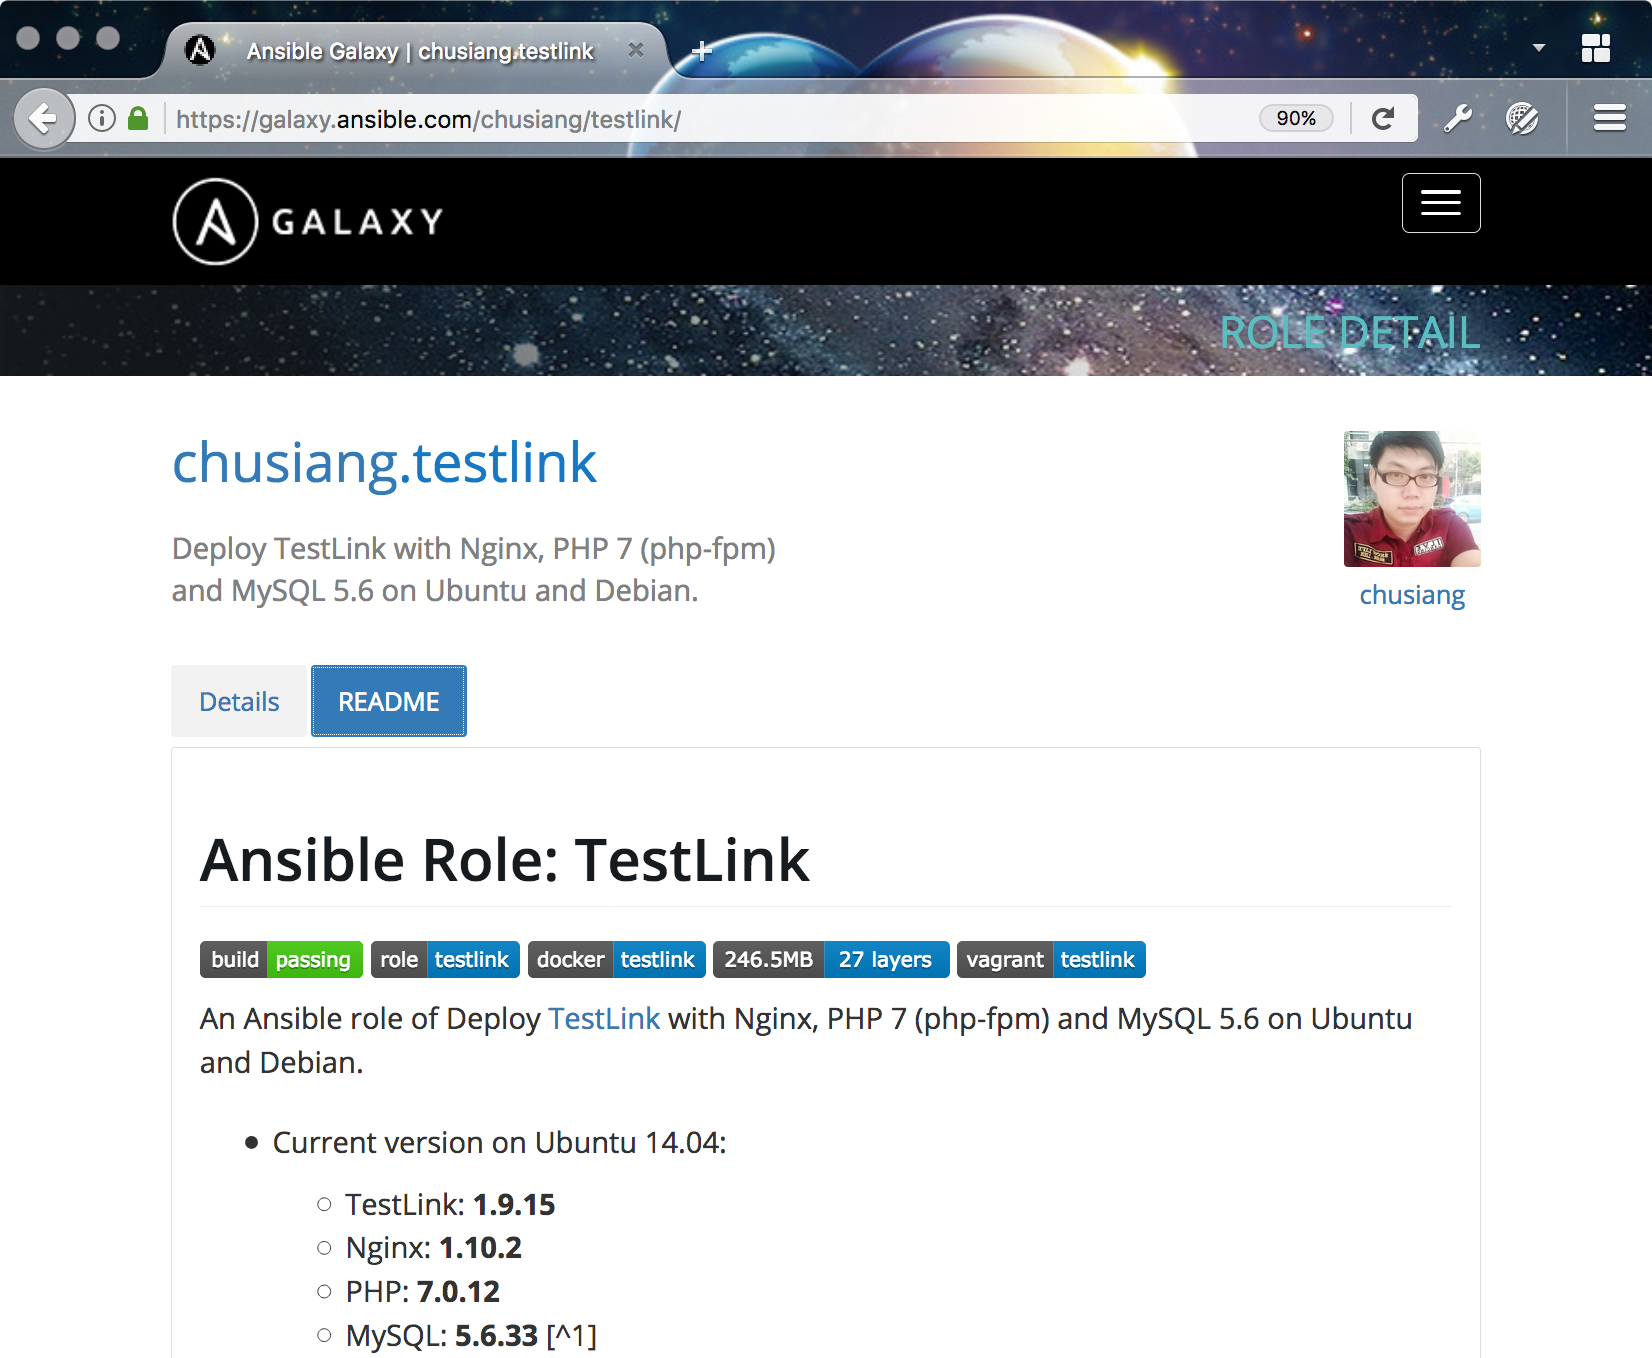 2016-12-24-chusiang-testlink-role.png